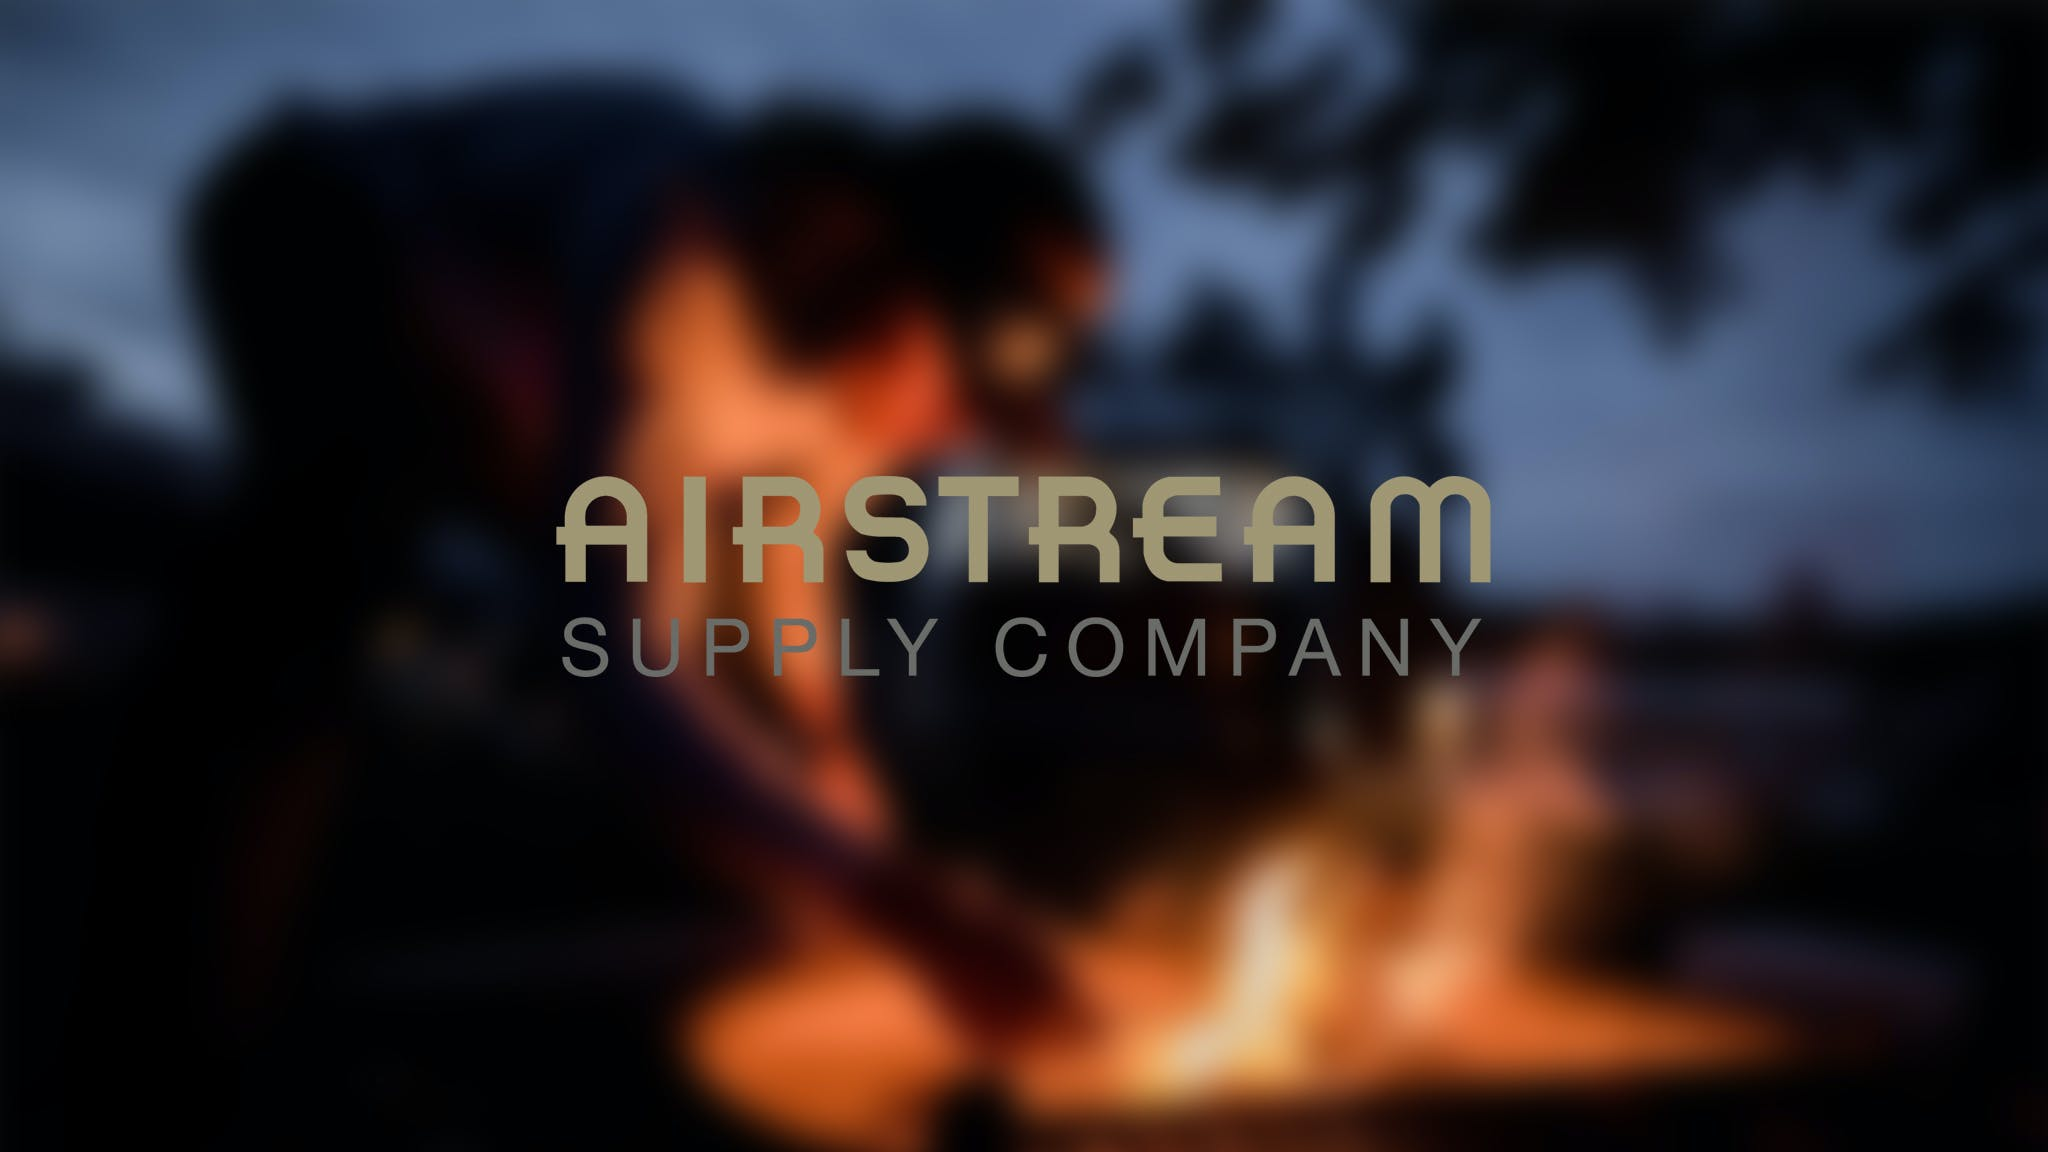 Airstream Supply Company